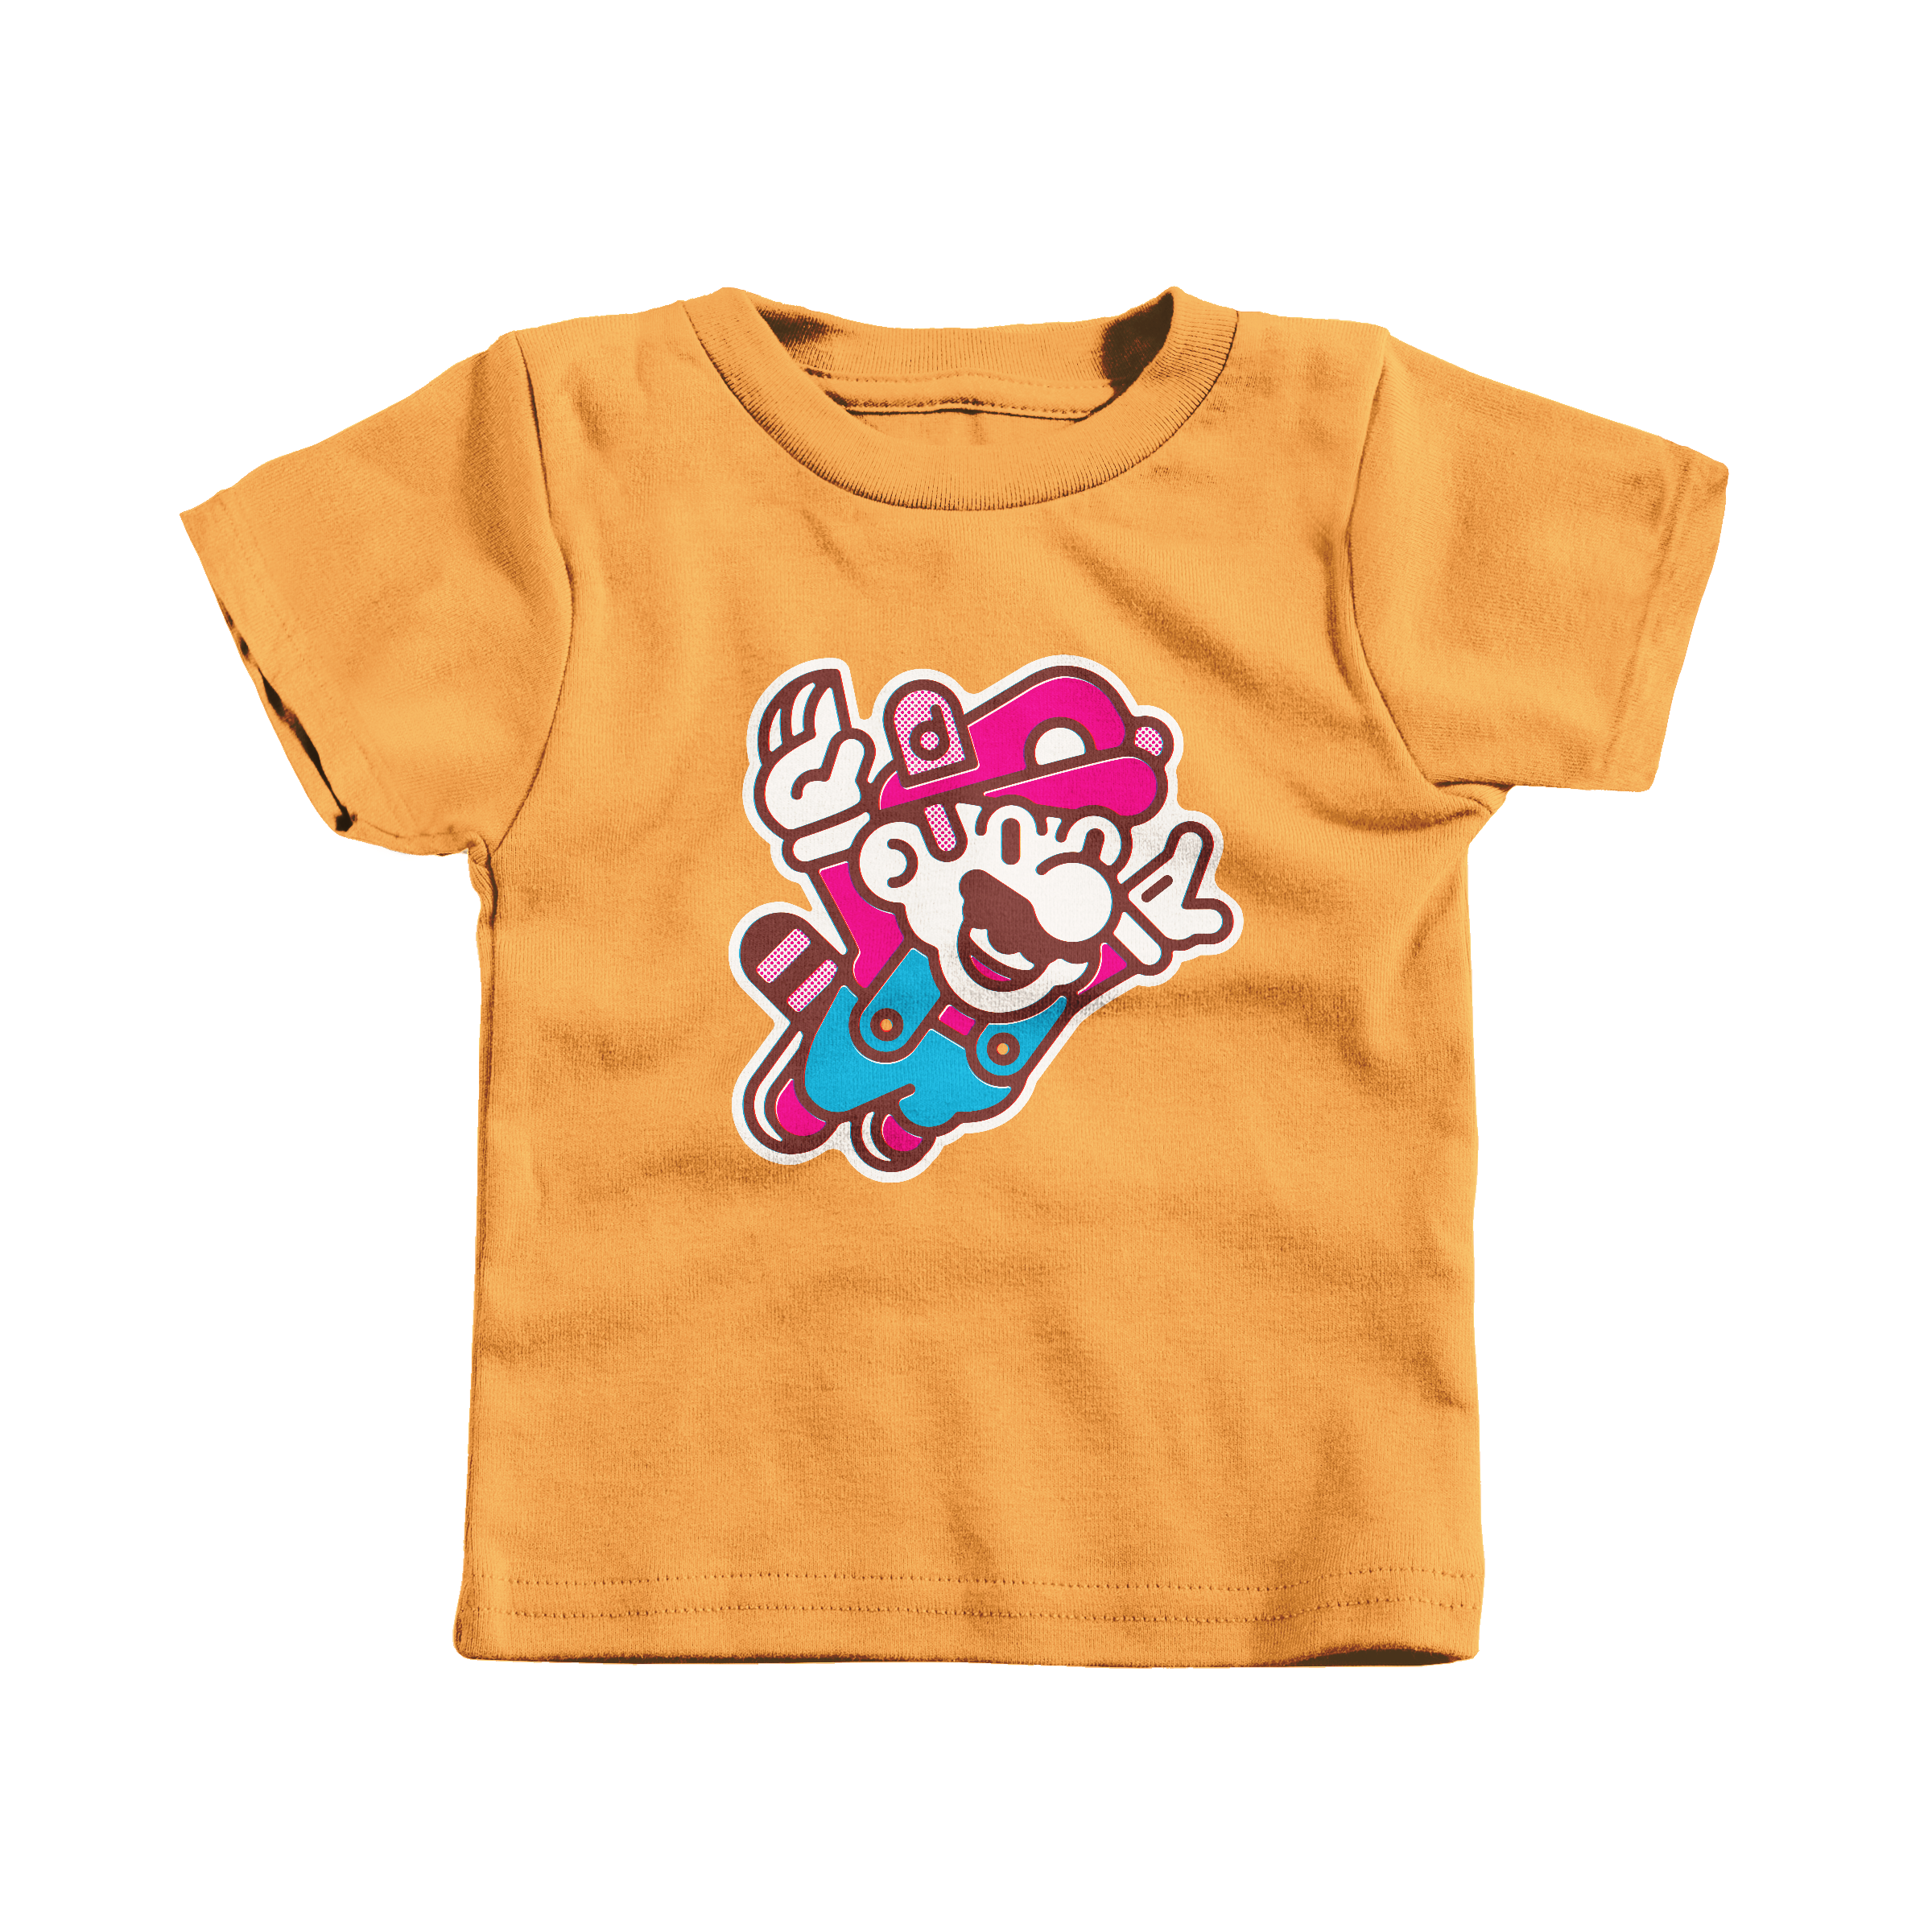 Super Mario Bros. 3 Gold (T-Shirt)